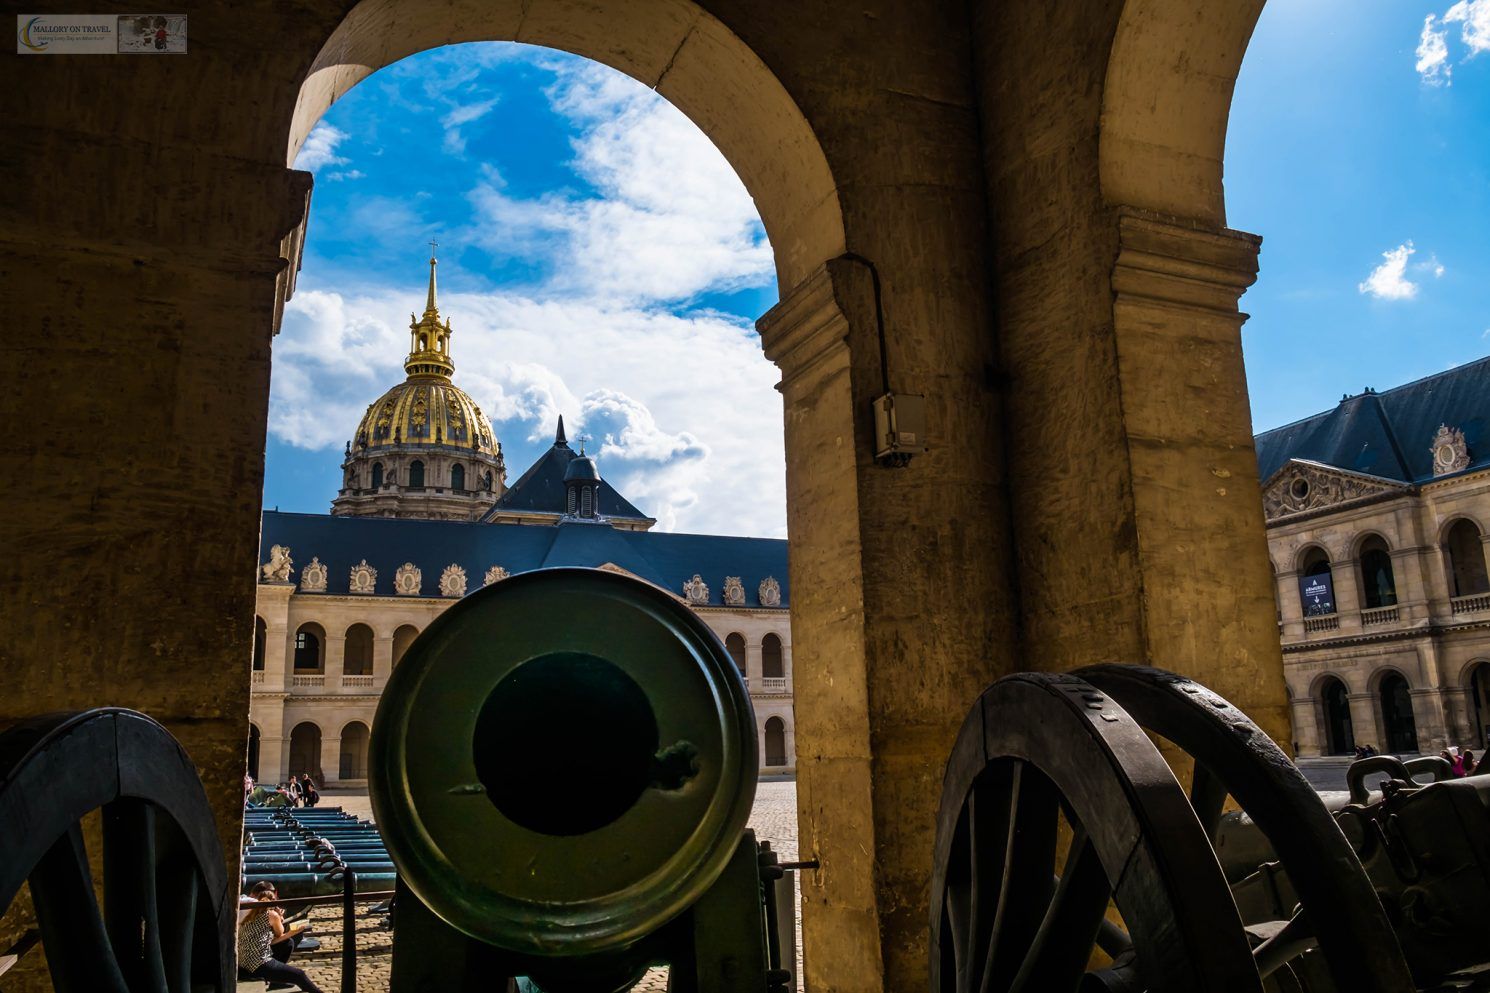 The Dôme Des Invalides at the Musée de l'Armée in Paris, France on Mallory on Travel adventure travel, photography, travel iain_mallory_musee-3557